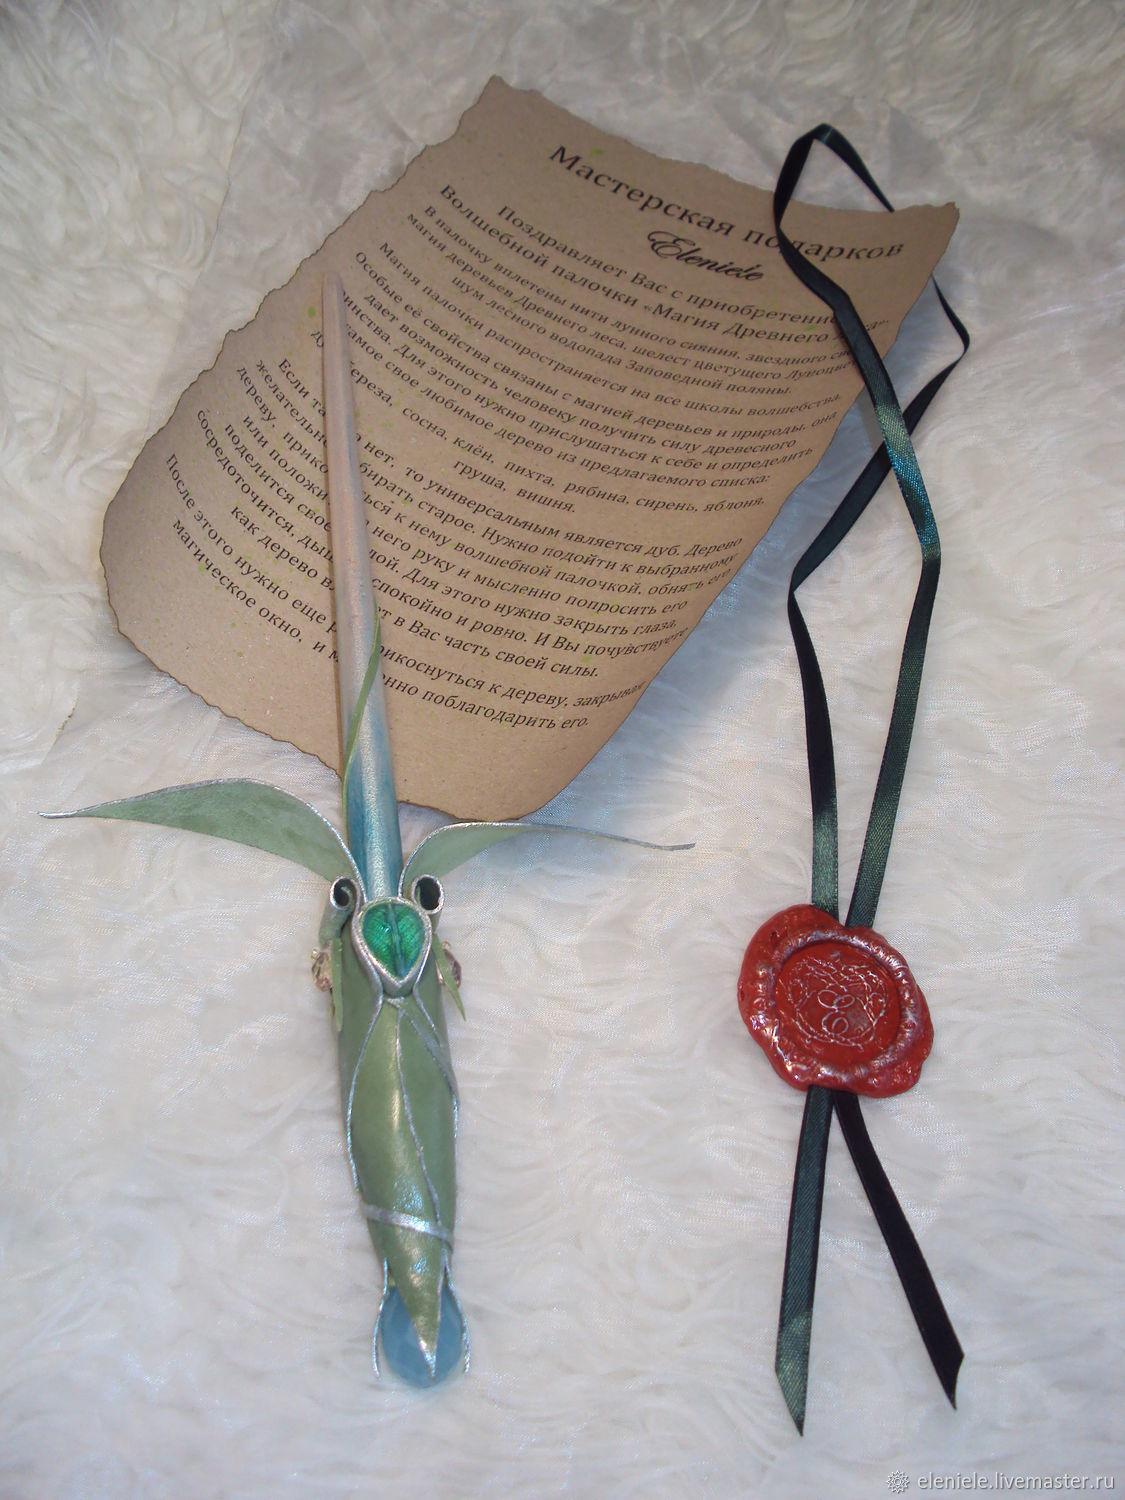 Magic wand 'the Magic of the Ancient forest', Movie souvenirs, Moscow,  Фото №1